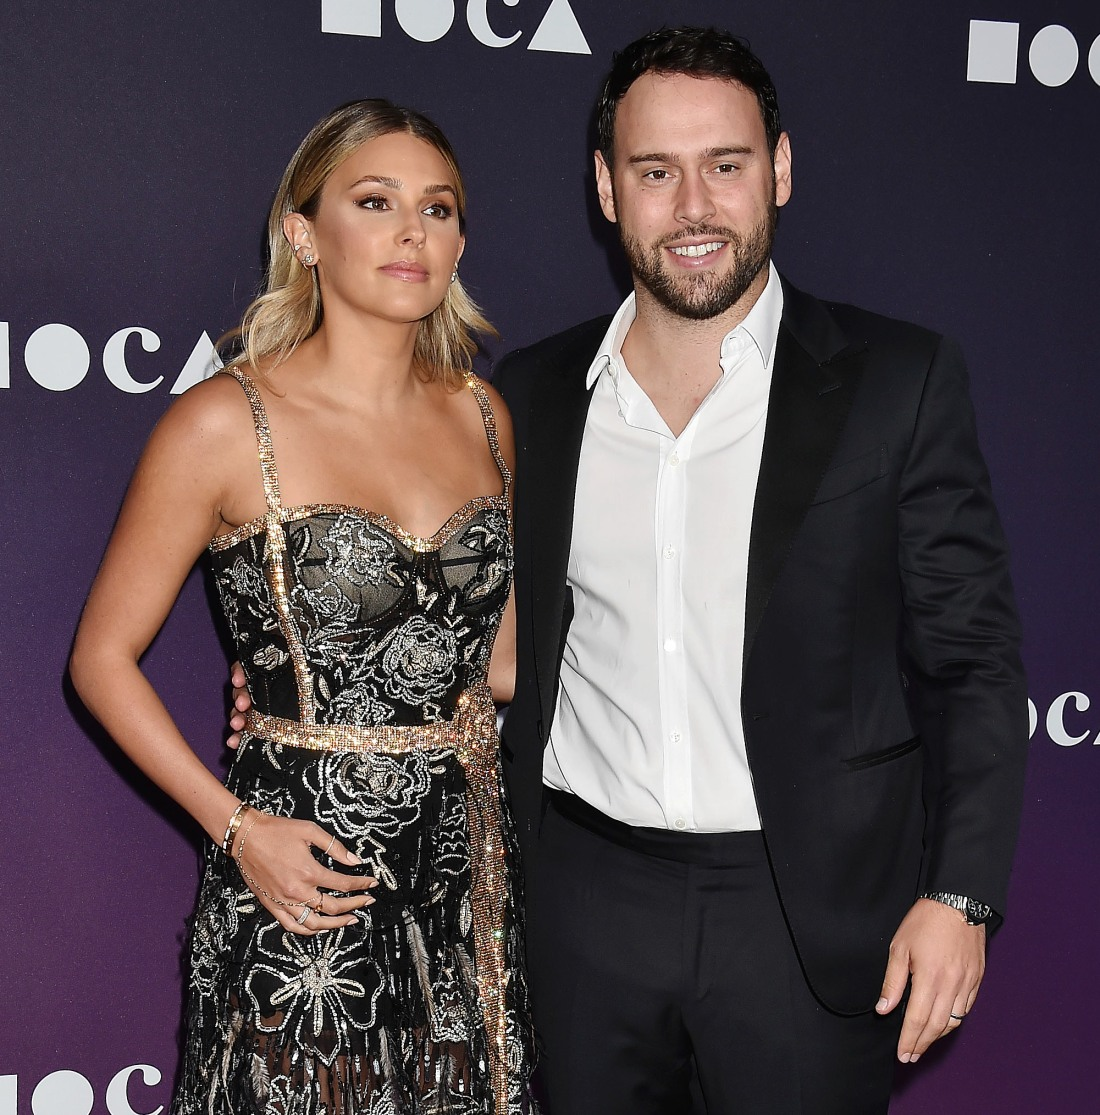 Scooter Braun filed for divorce from Yael Cohen, his lawyer is Laura